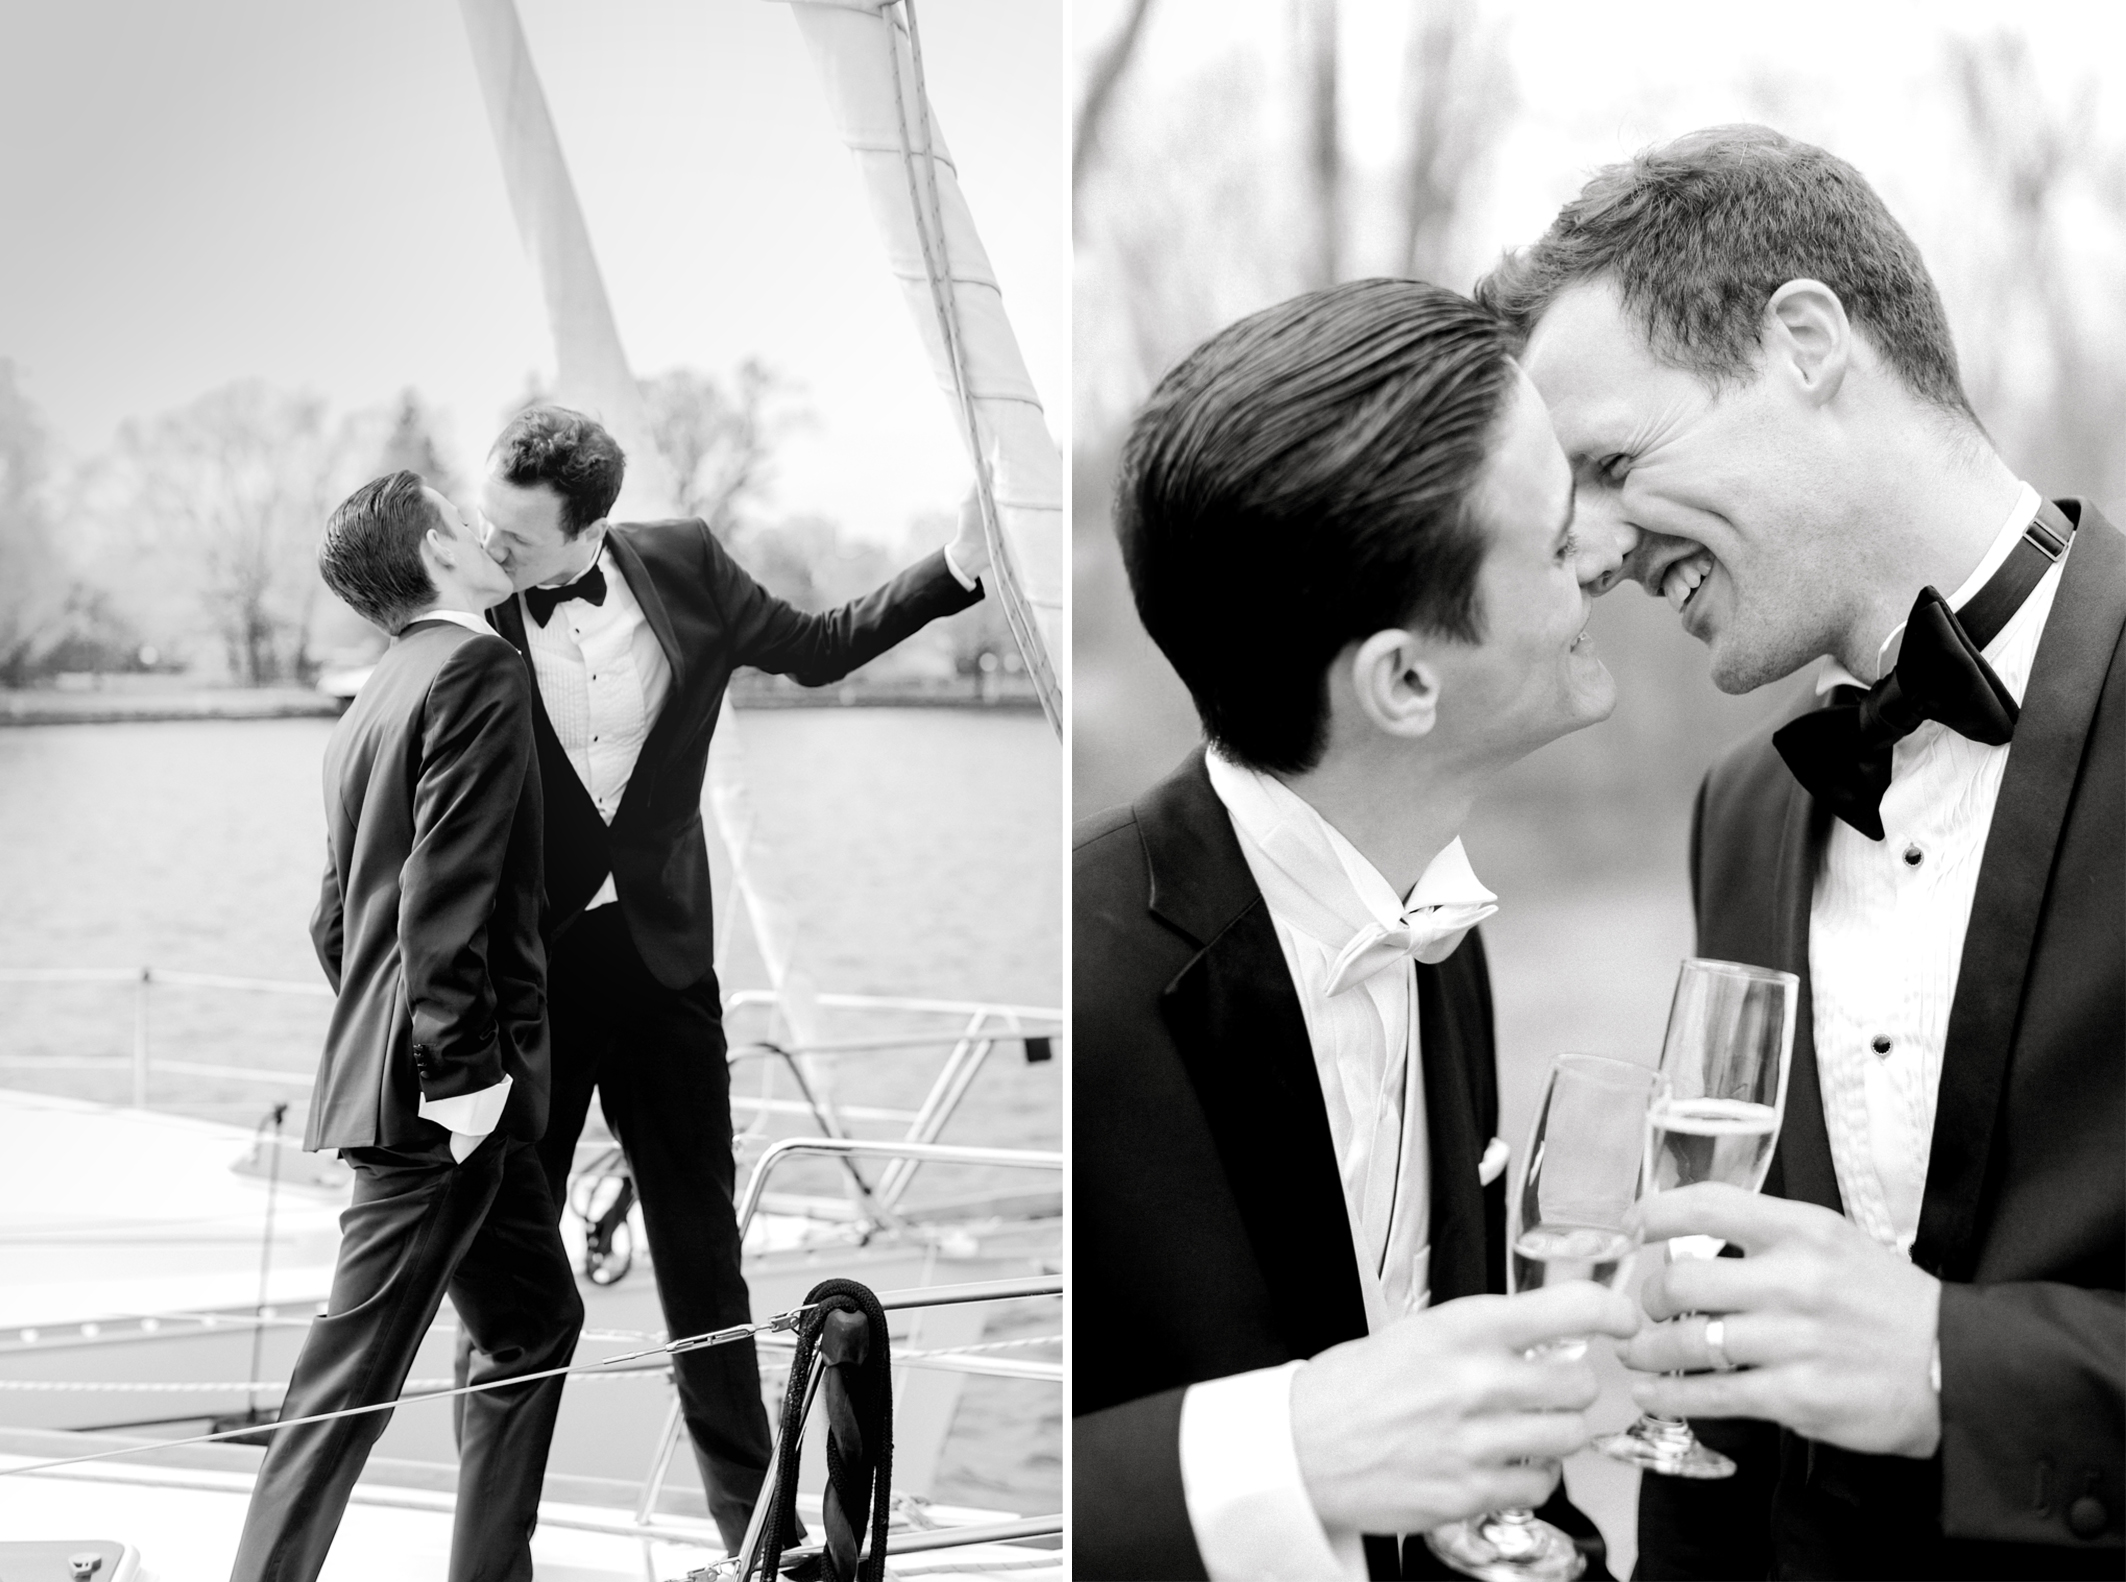 gay-wedding-toronto-wedding-toronto-photographer-langdon-richelle-hunter.jpg